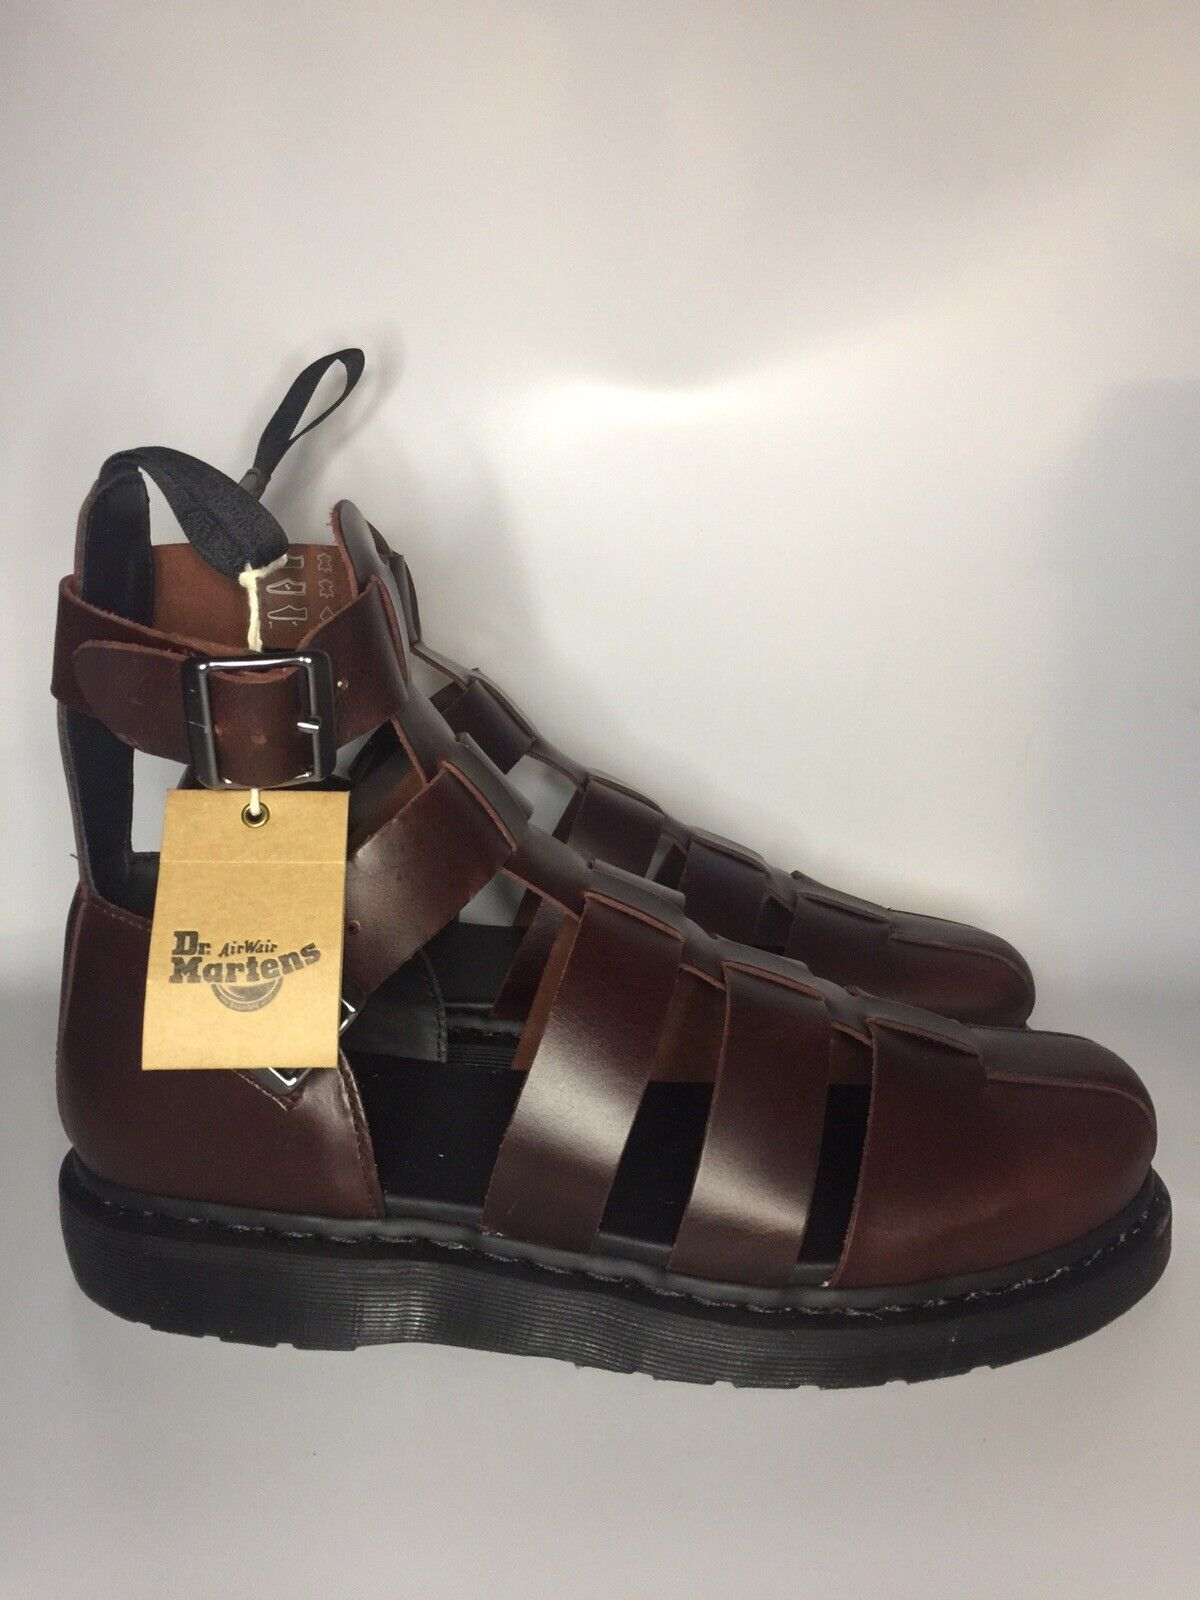 New Dr Martens Airwair Brown Leather Shoes Mens Size 14 (AW004)